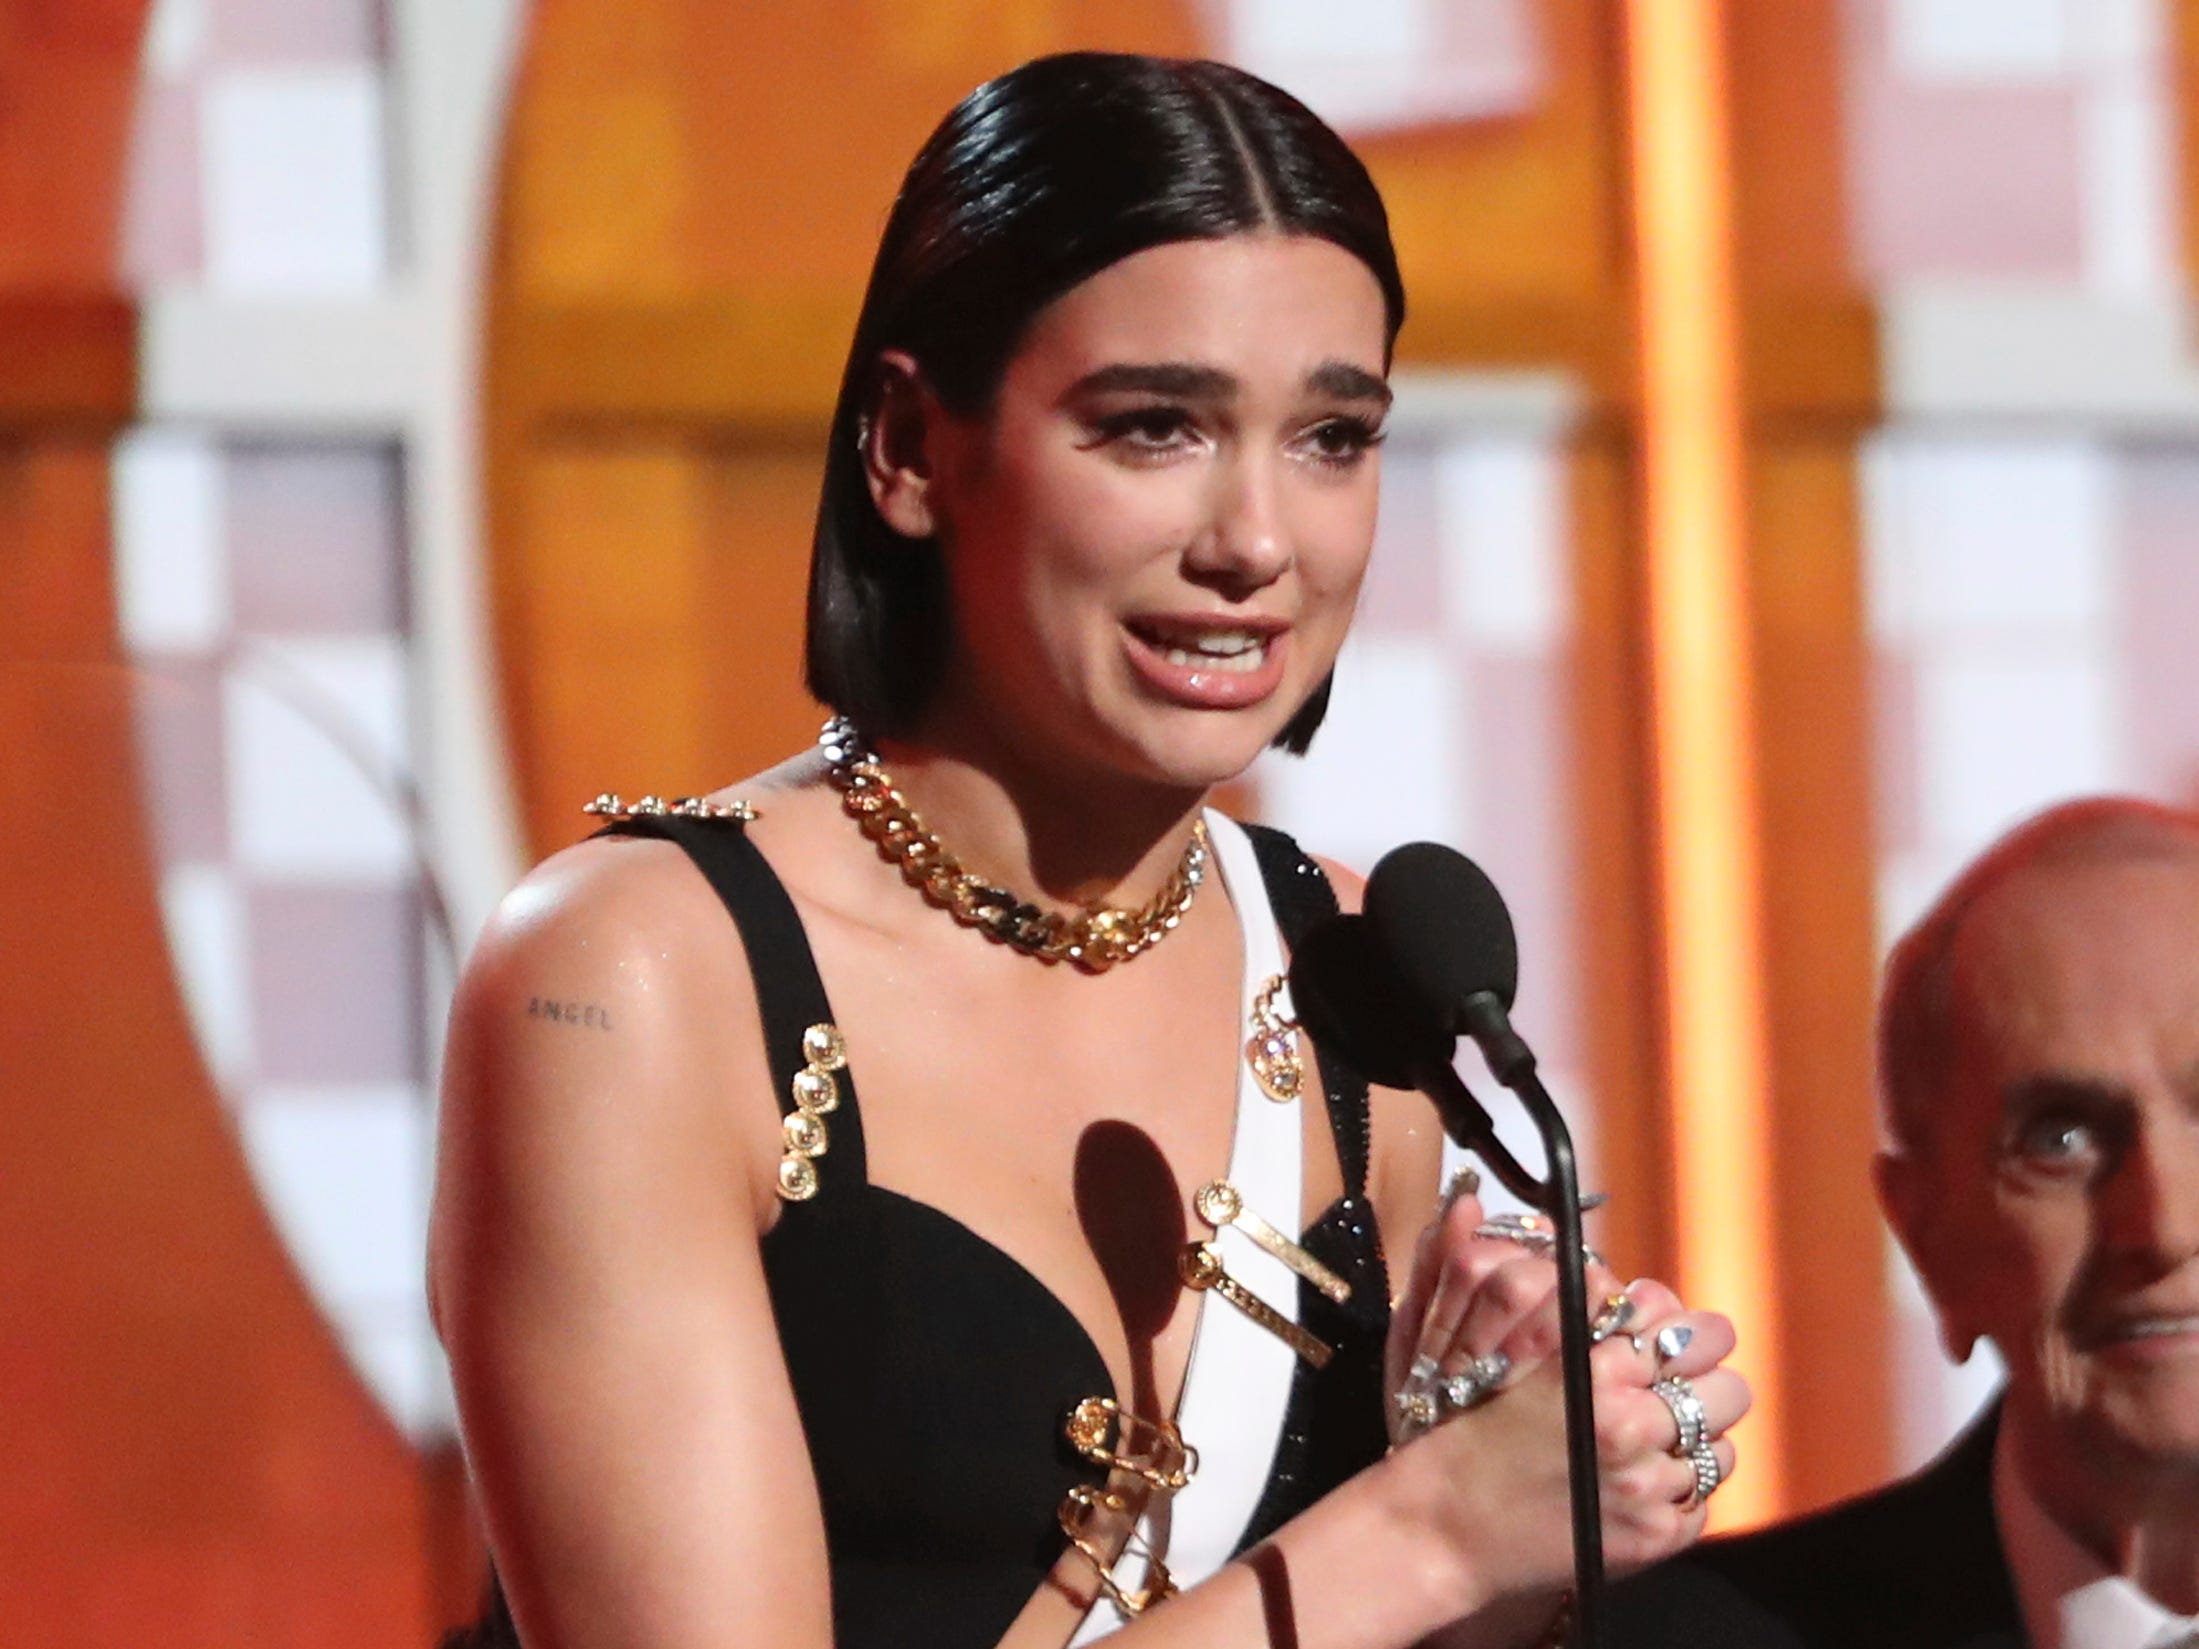 Dua Lipa accepts the award for best new artist at the 61st annual Grammy Awards on Sunday, Feb. 10, 2019, in Los Angeles. \